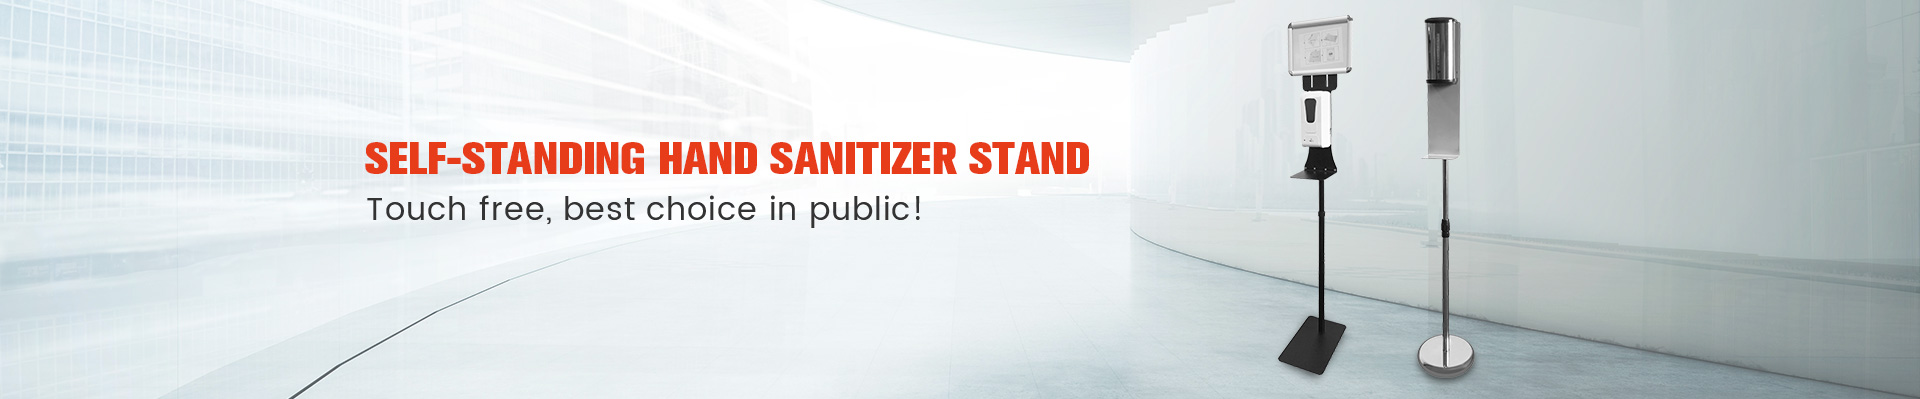 SELF-STANDING HAND SANITIZER STAND